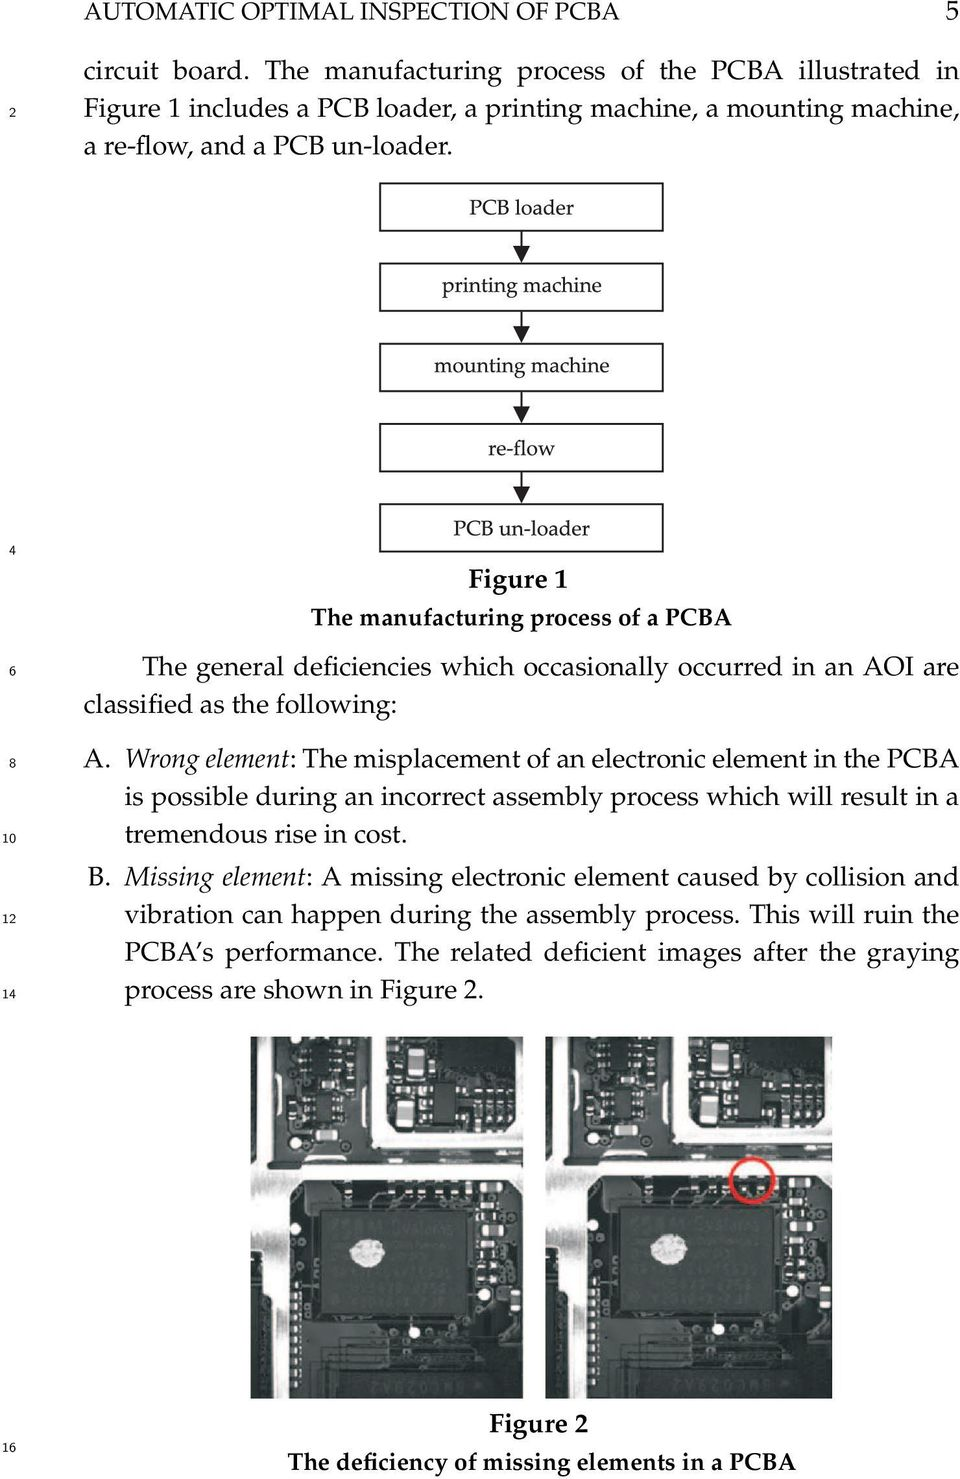 The Application Of Image Division Method On Automatic Optical 10 Circuit Board Composition Notebook 1 Figure Manufacturing Process A Pcba General Deficiencies Which Occasionally Occurred